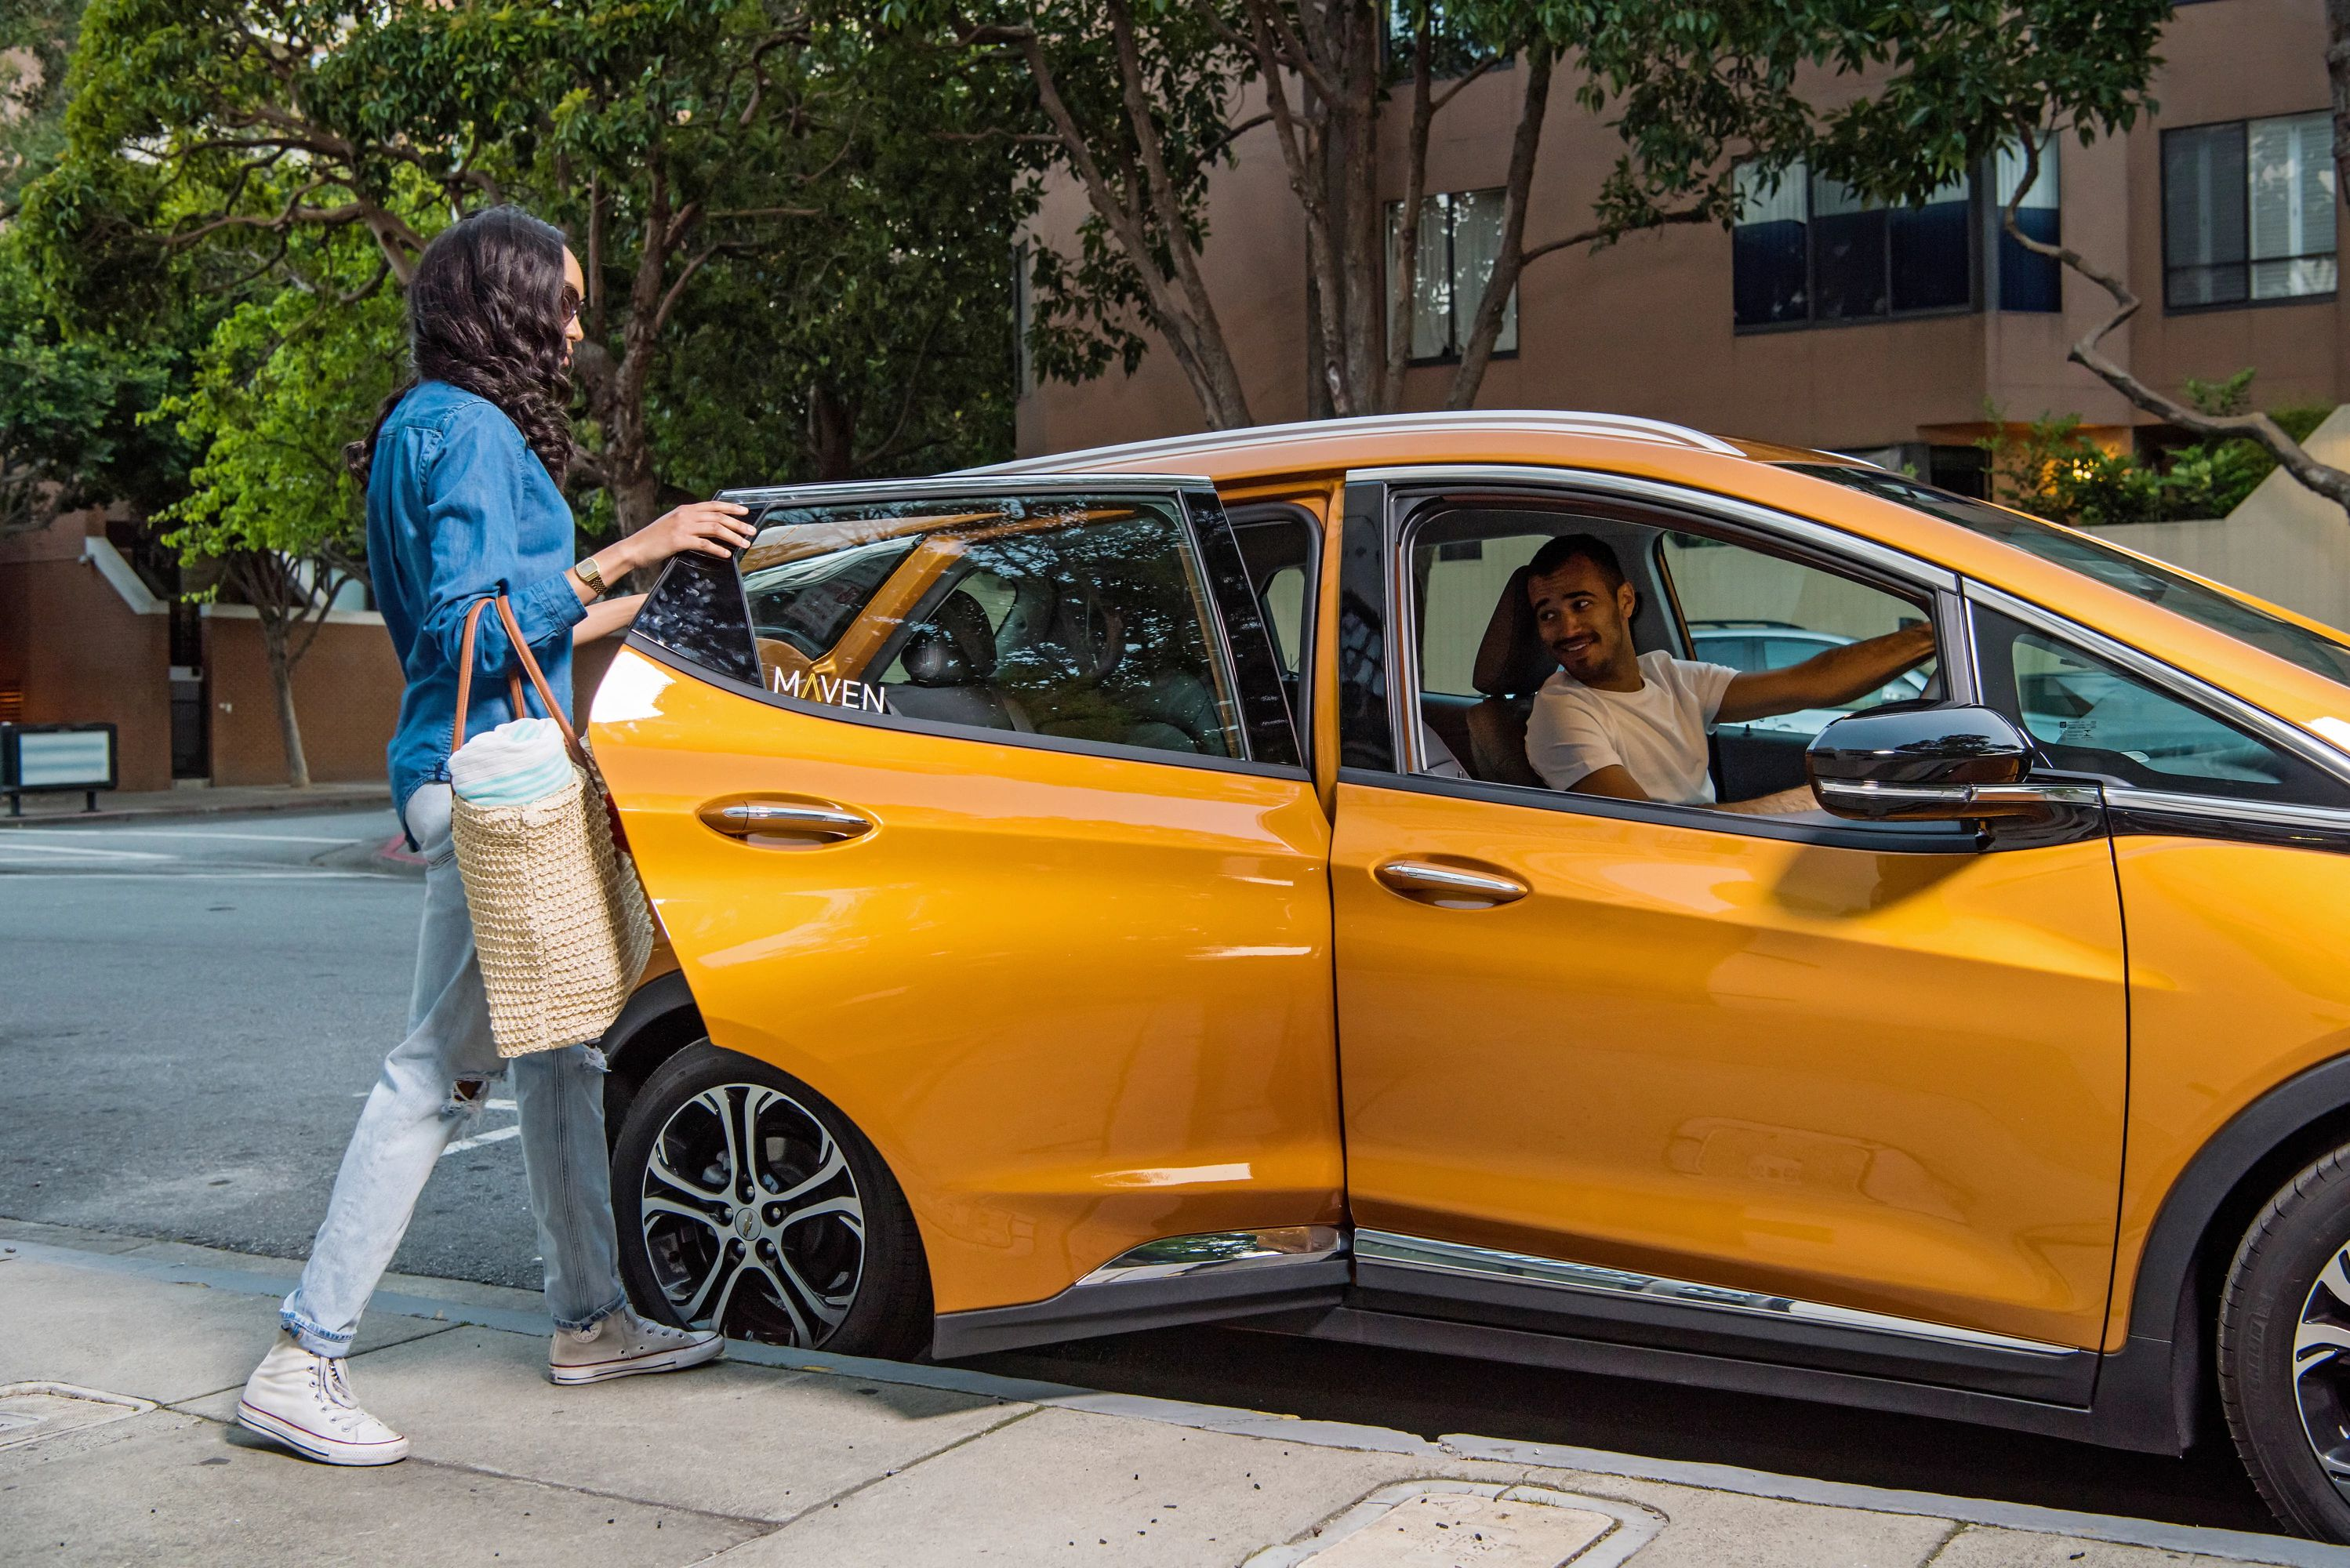 GM's Weekly Car Rental Service Continues to Expand Across U.S.